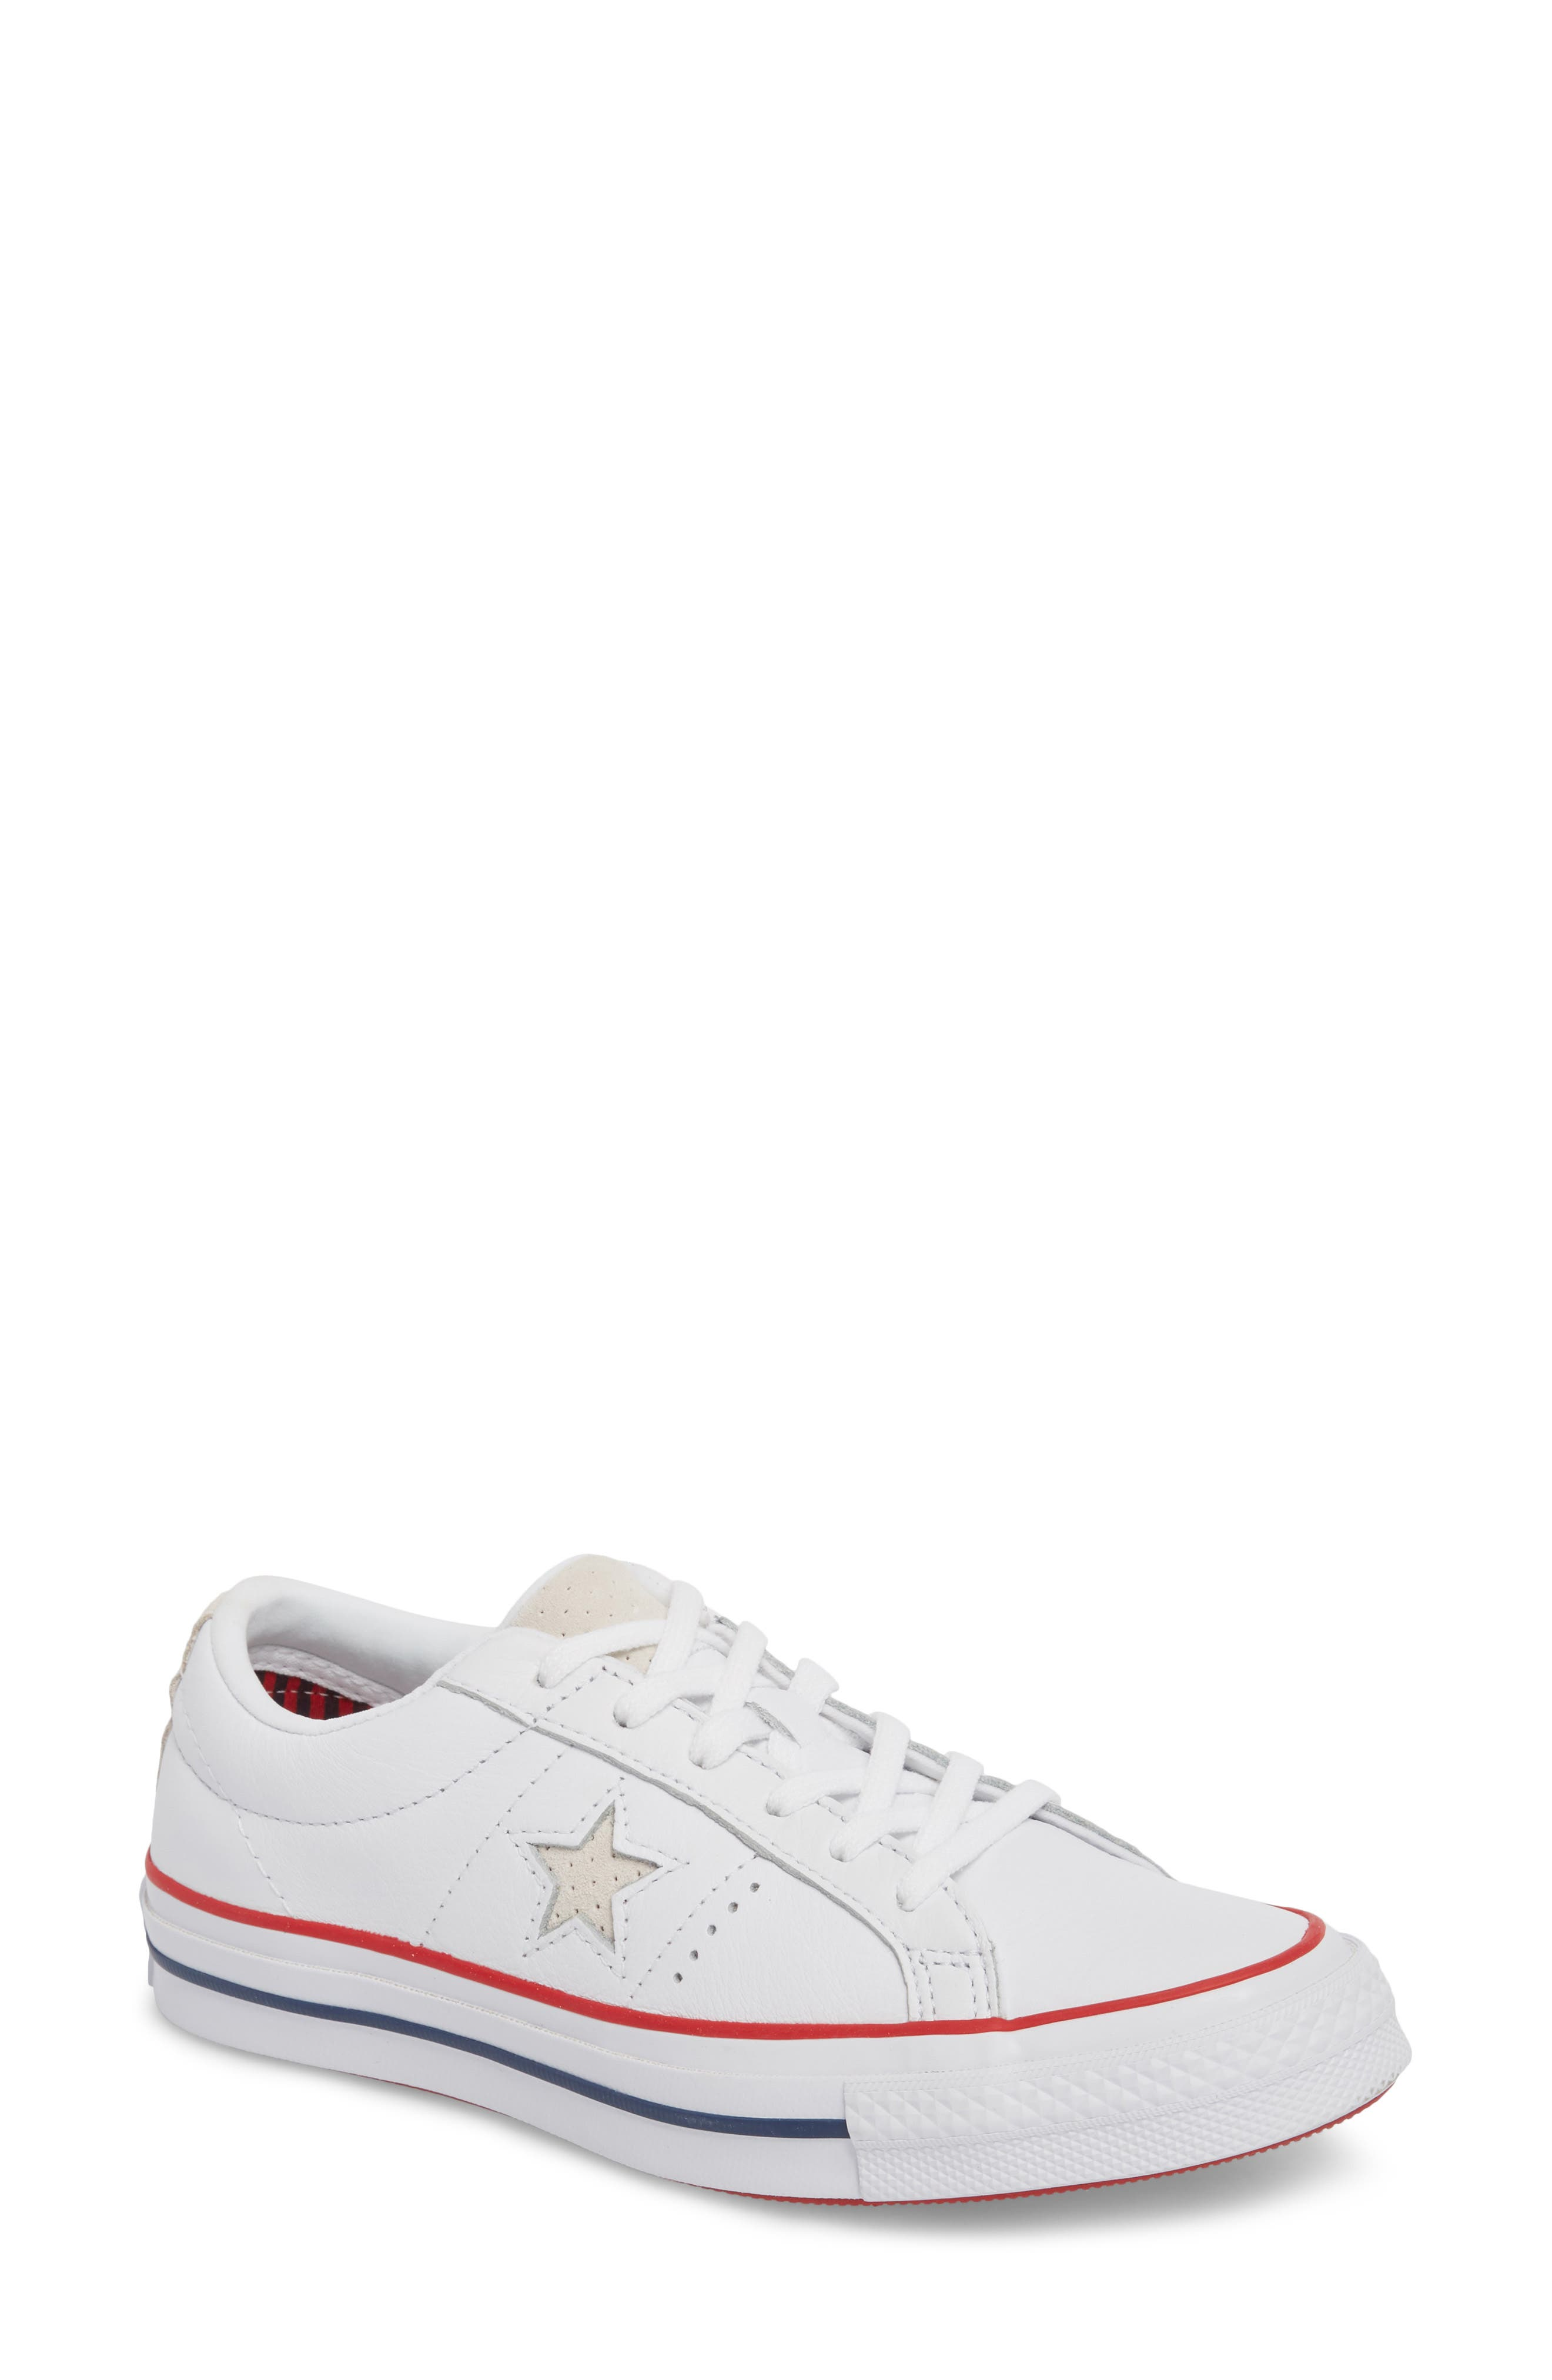 One Star Sneaker,                         Main,                         color, 102